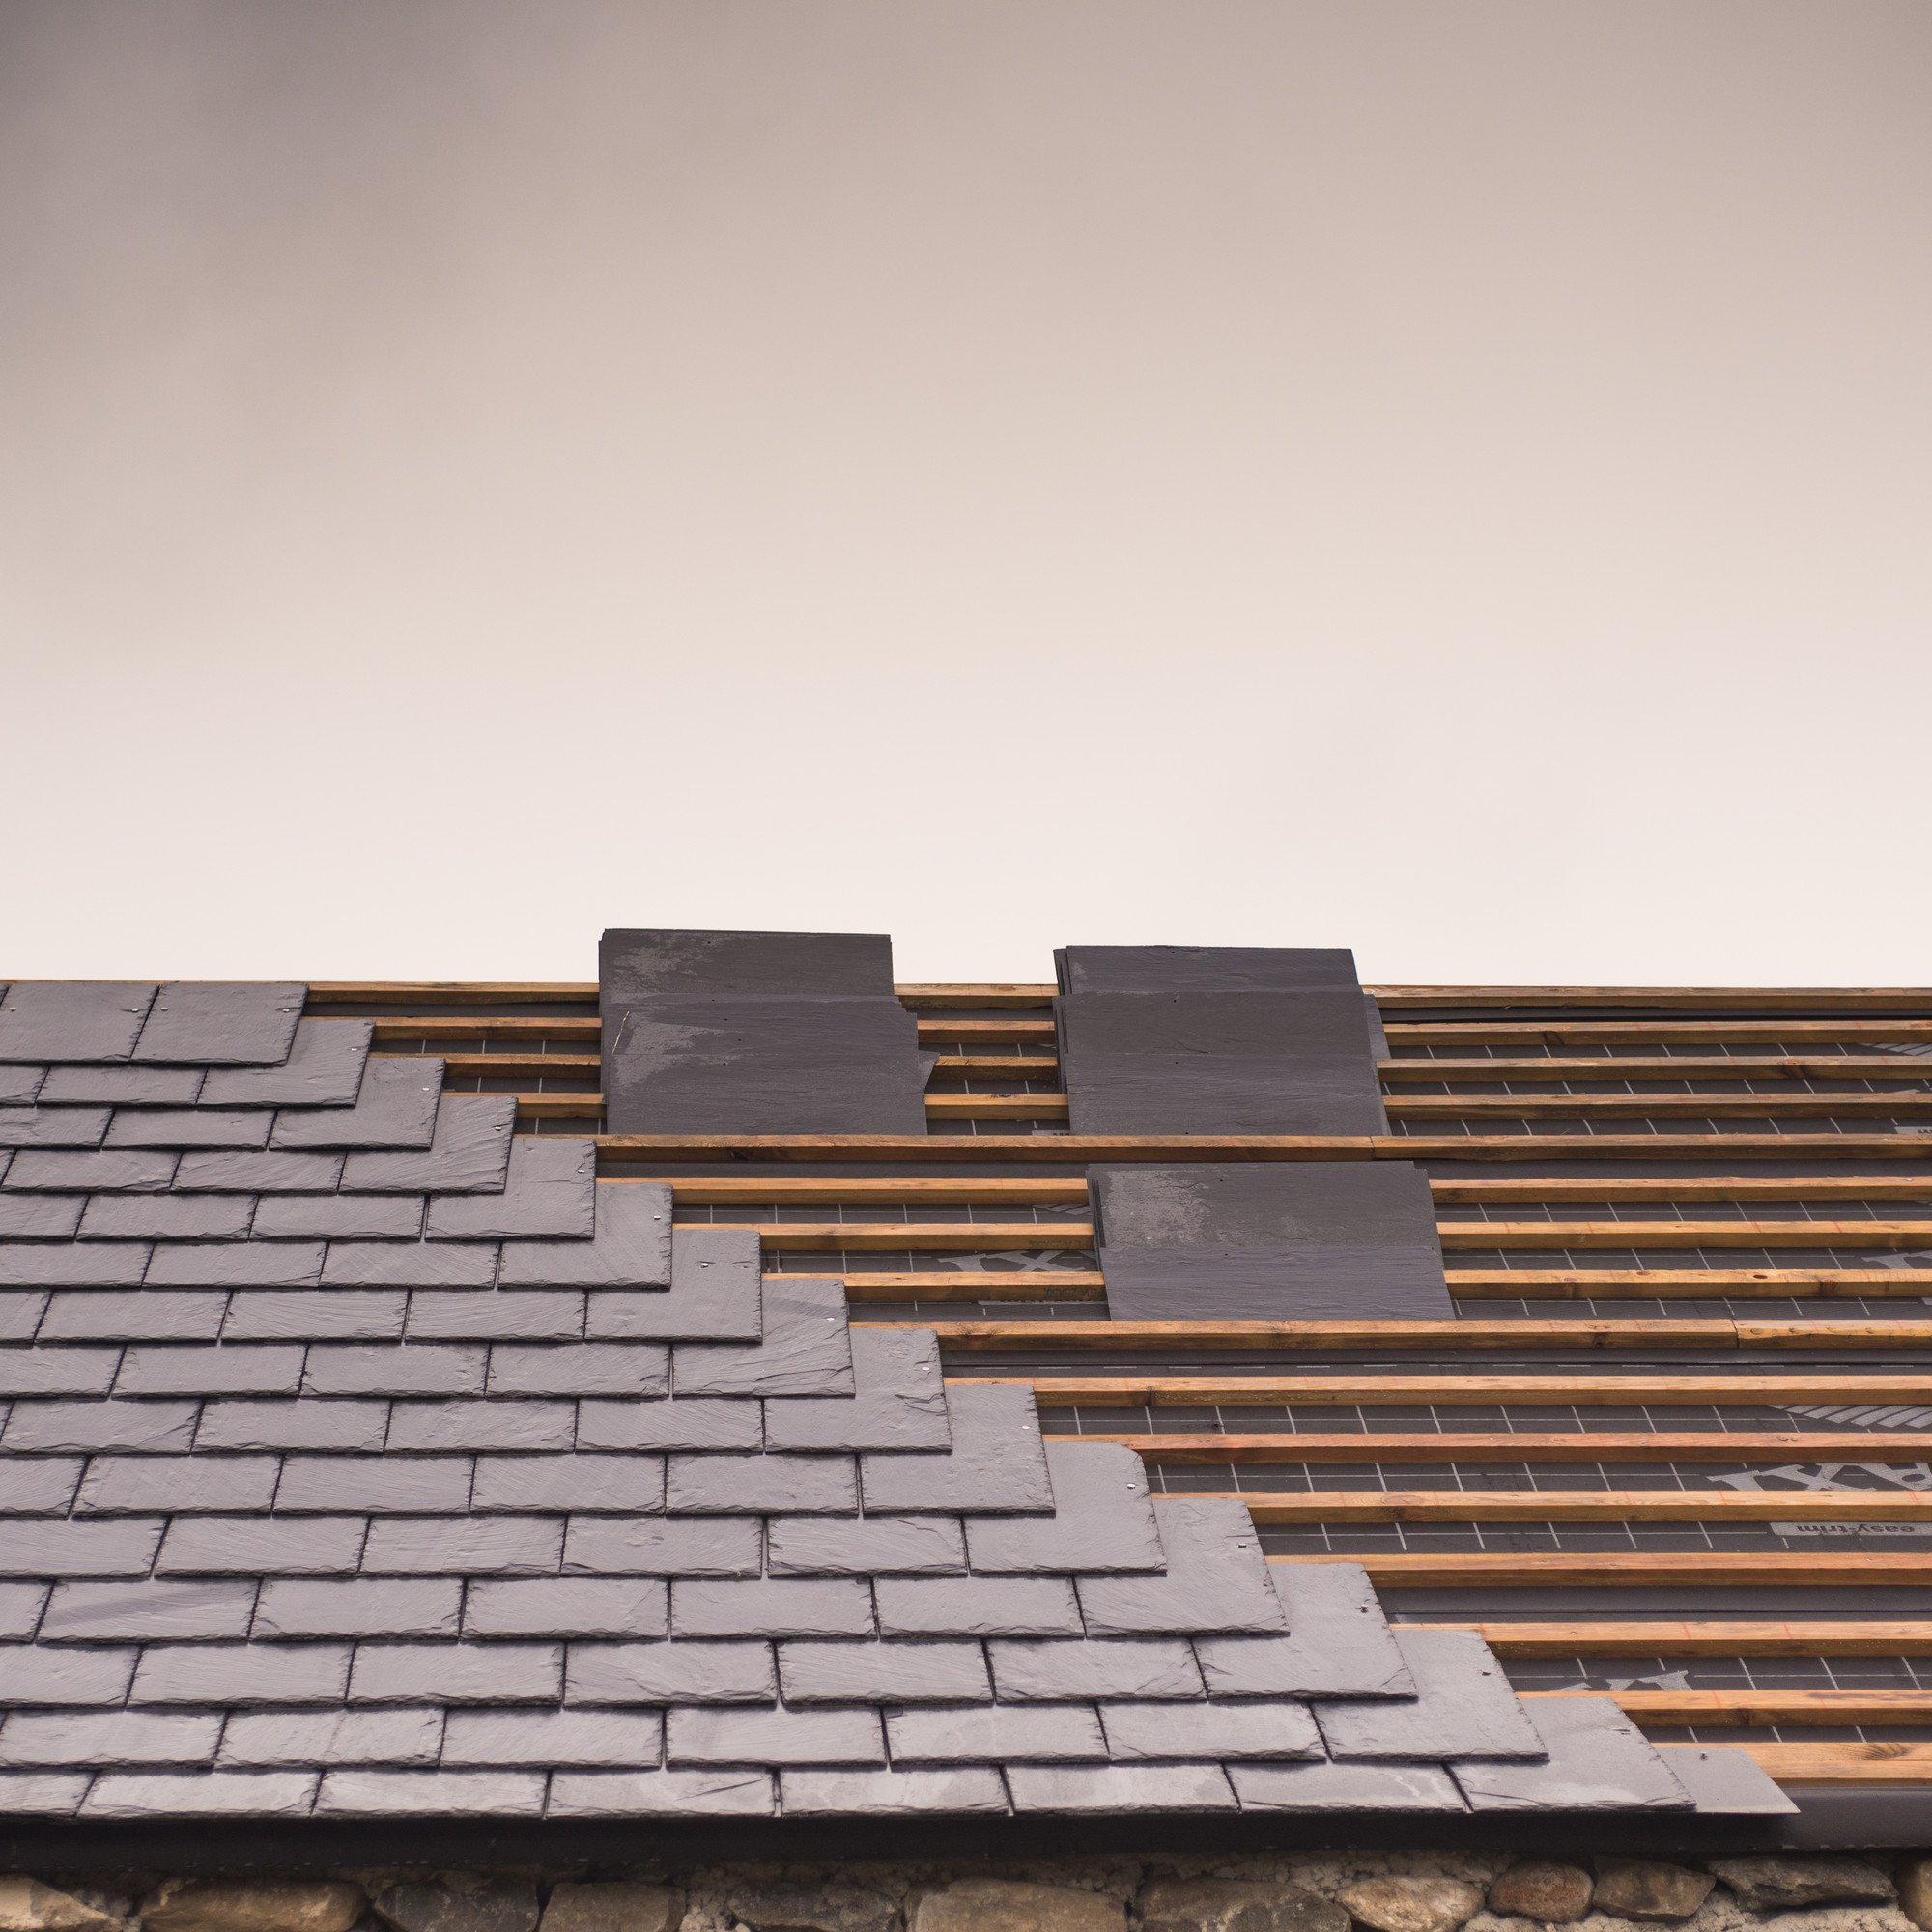 Jmg Roofing South Wales Ltd Roofing Contractors Serving